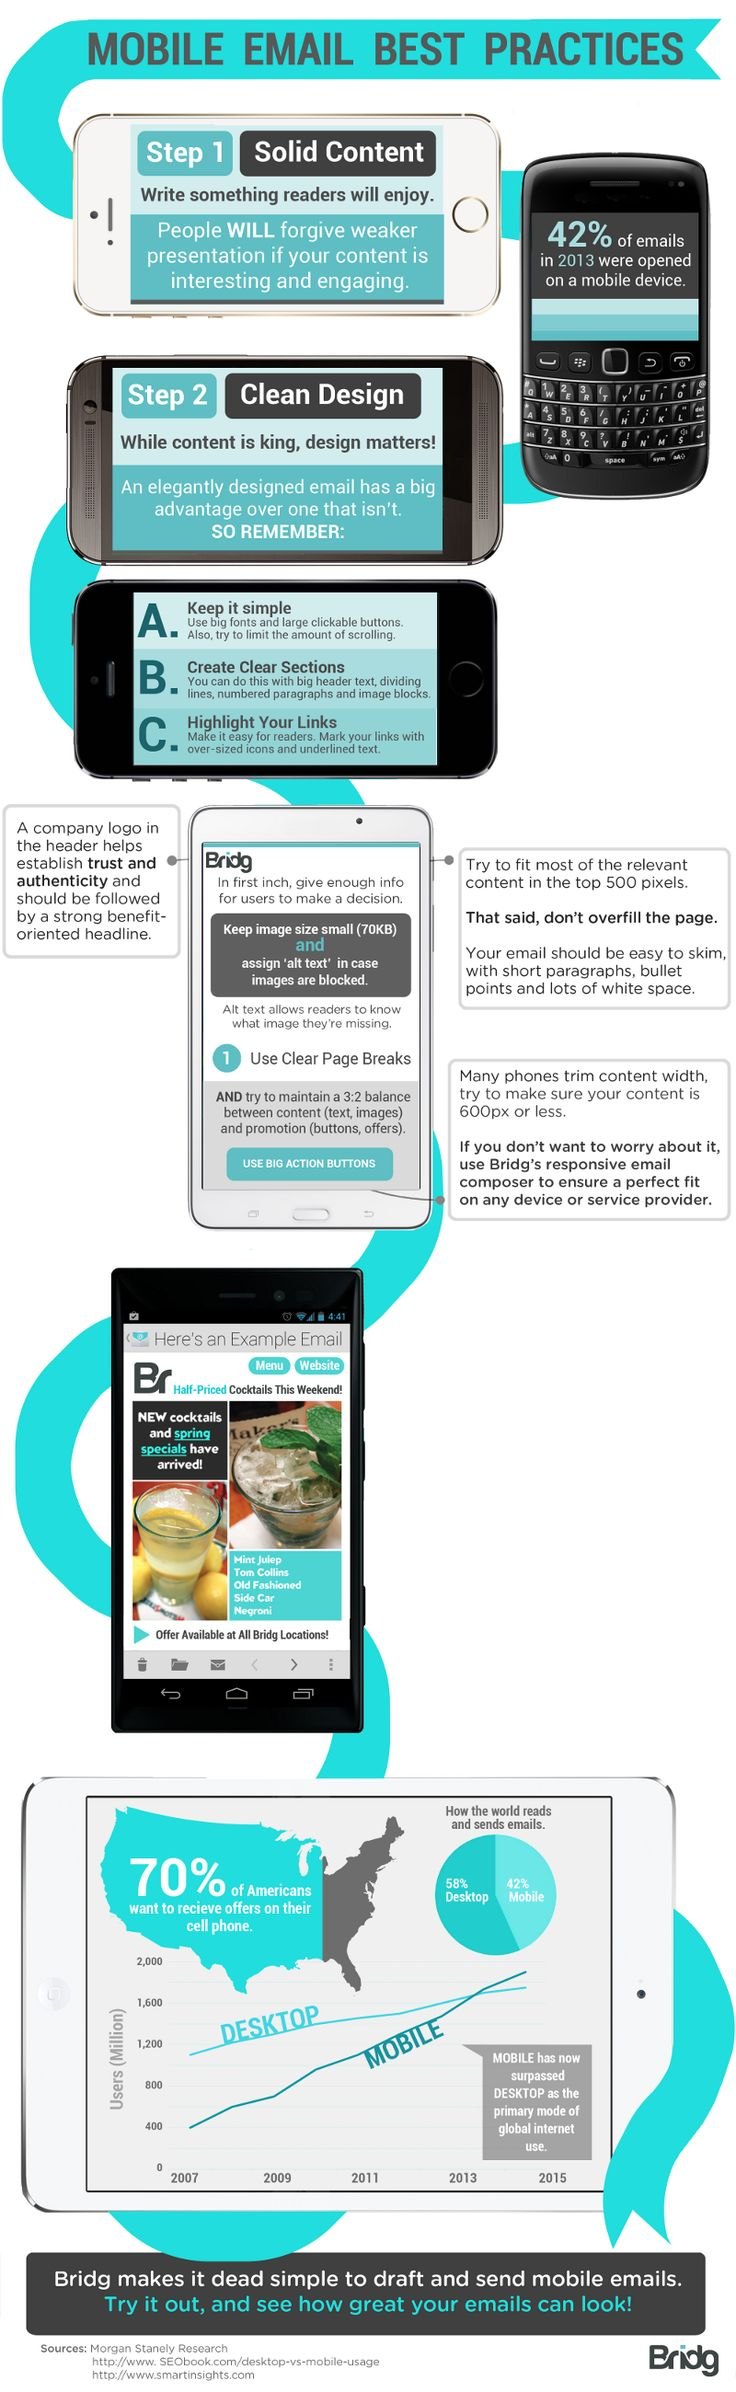 7 Big Tips for Mobile Email Marketing